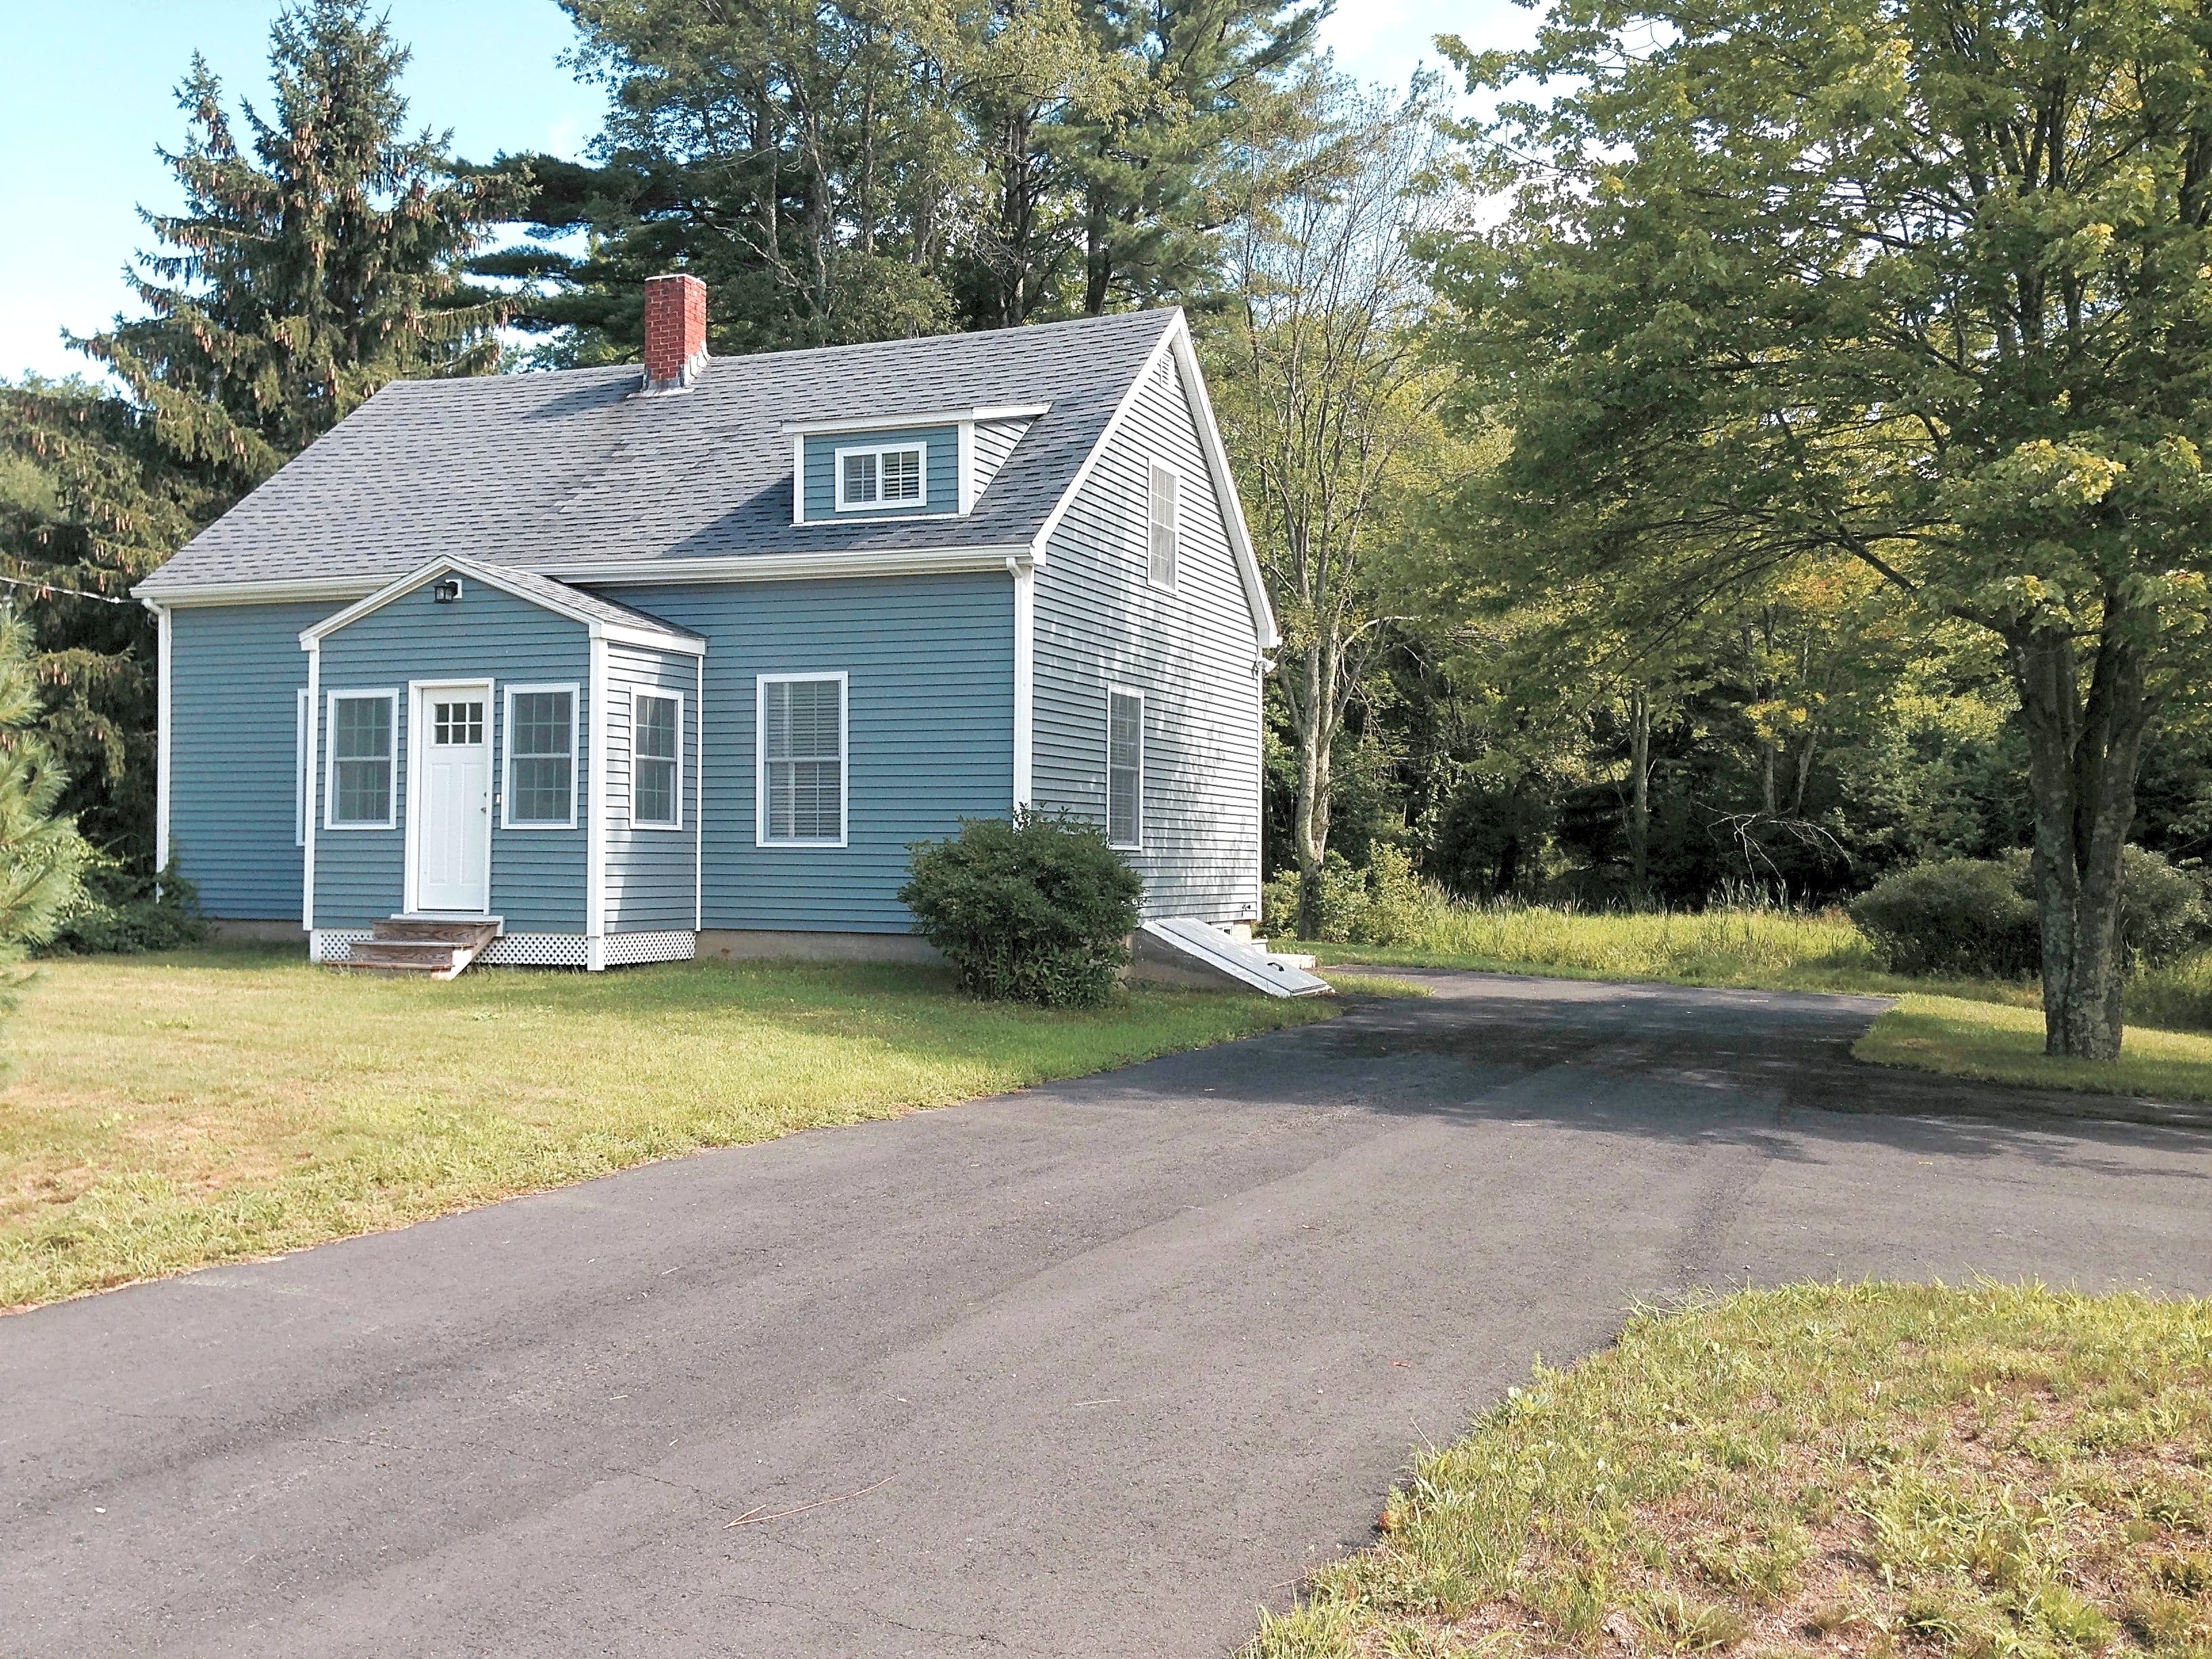 House for Rent in Saco